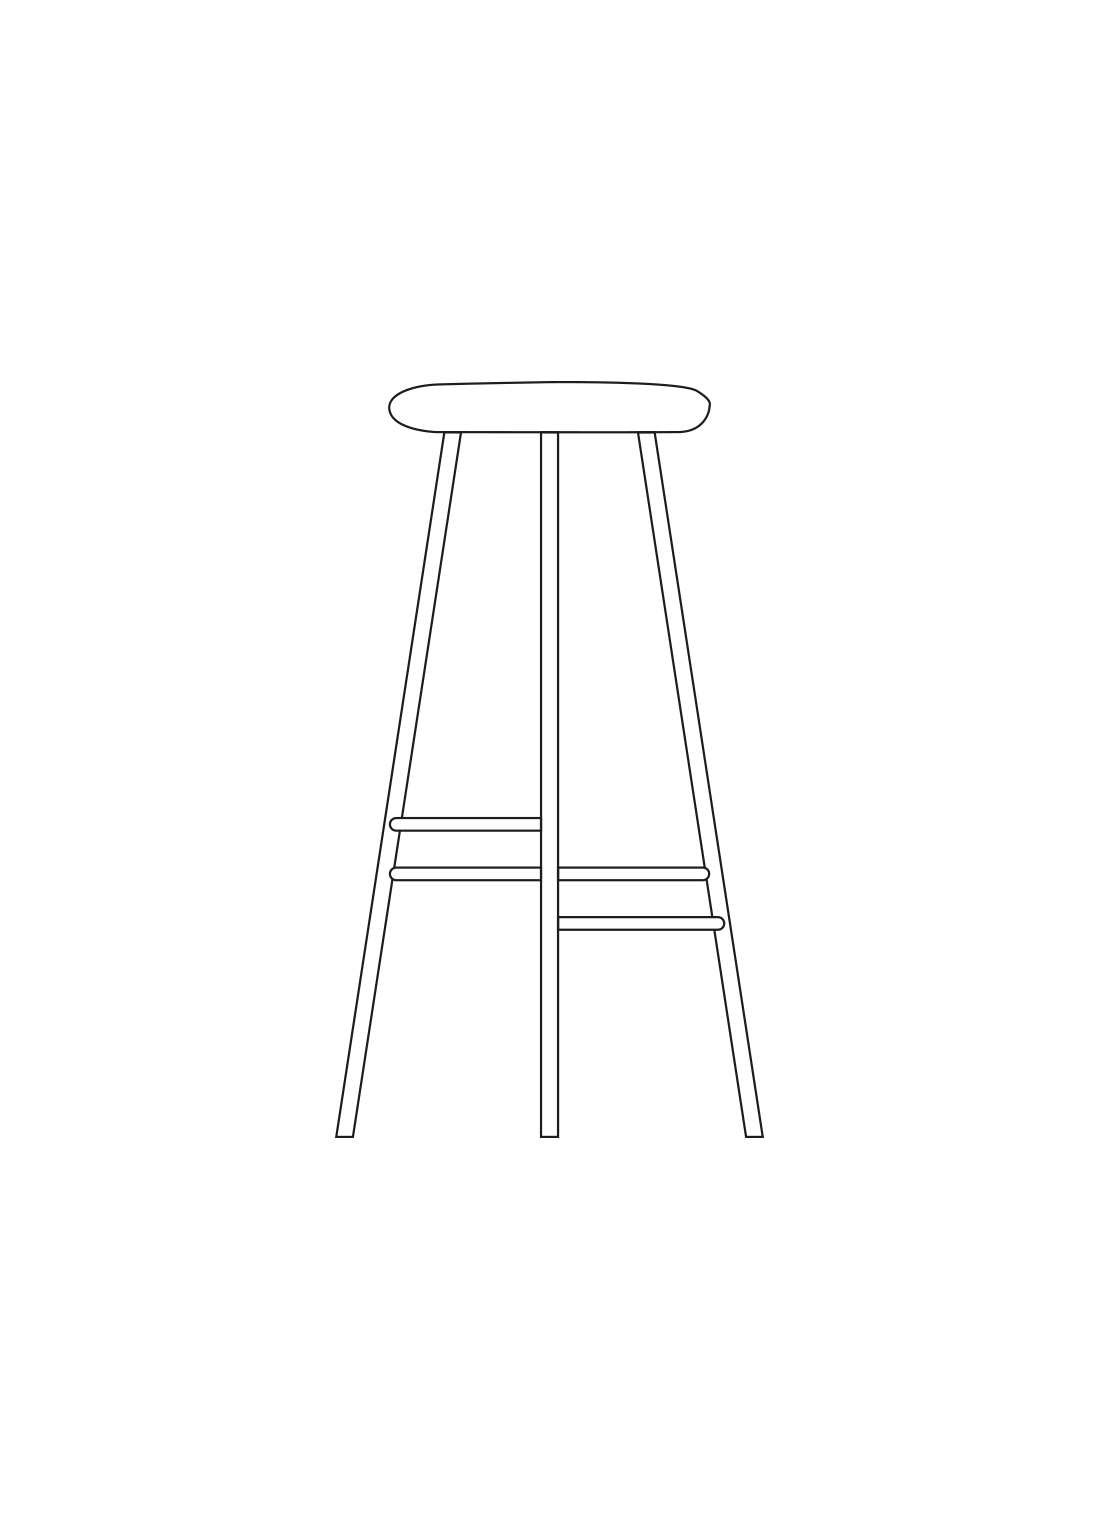 Pebble bar stool illustration